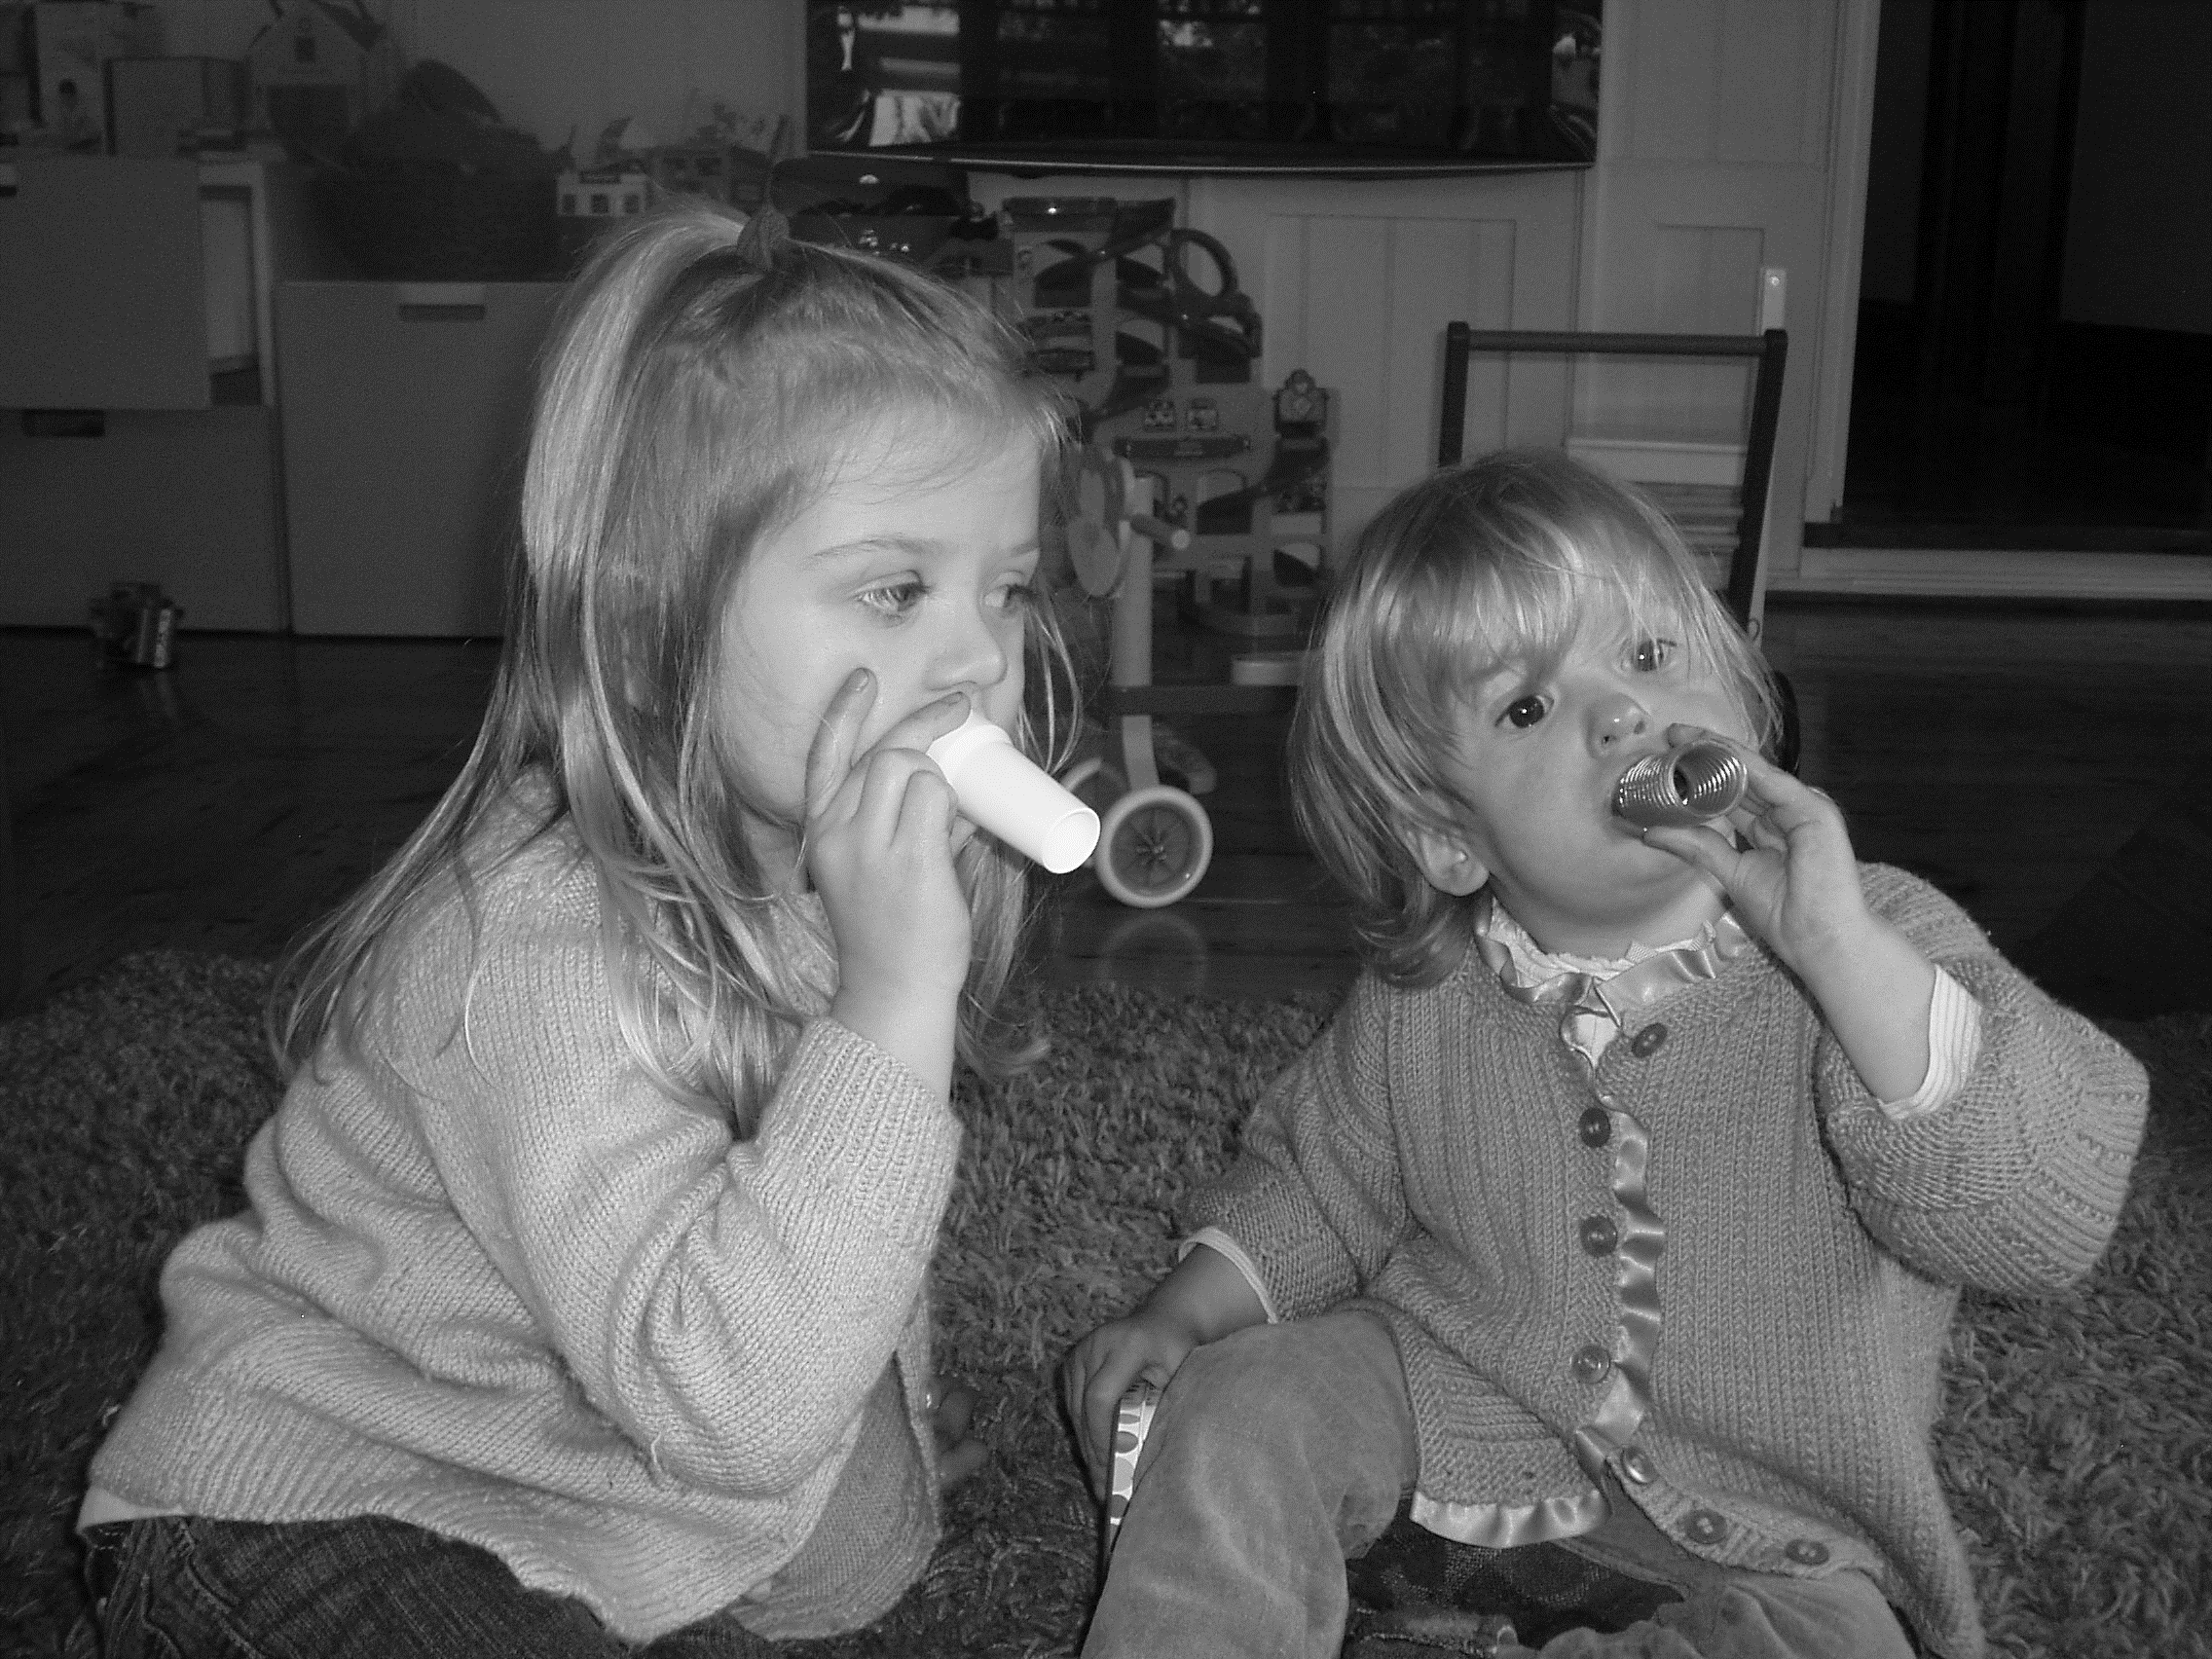 Huffing with tube two children